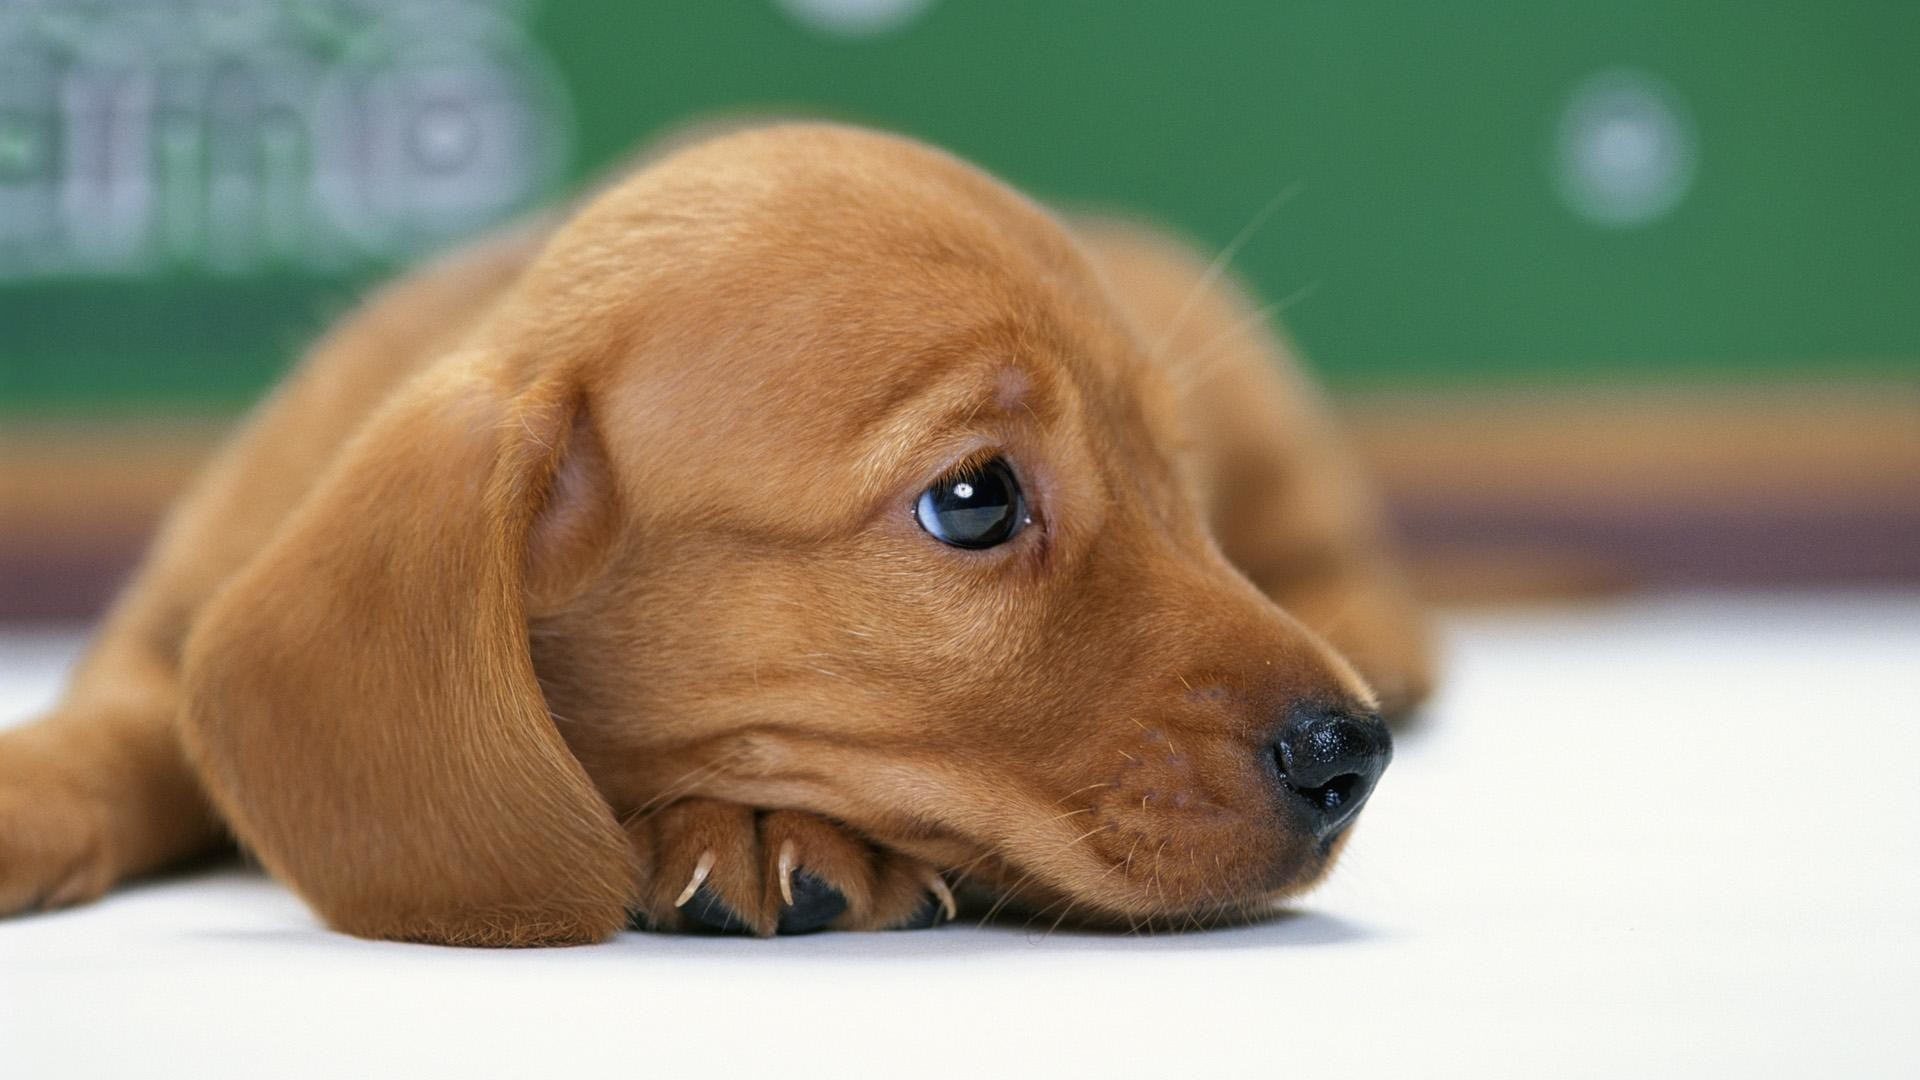 1920x1080 Dachshund Wallpaper - Wallpapers Browse ...